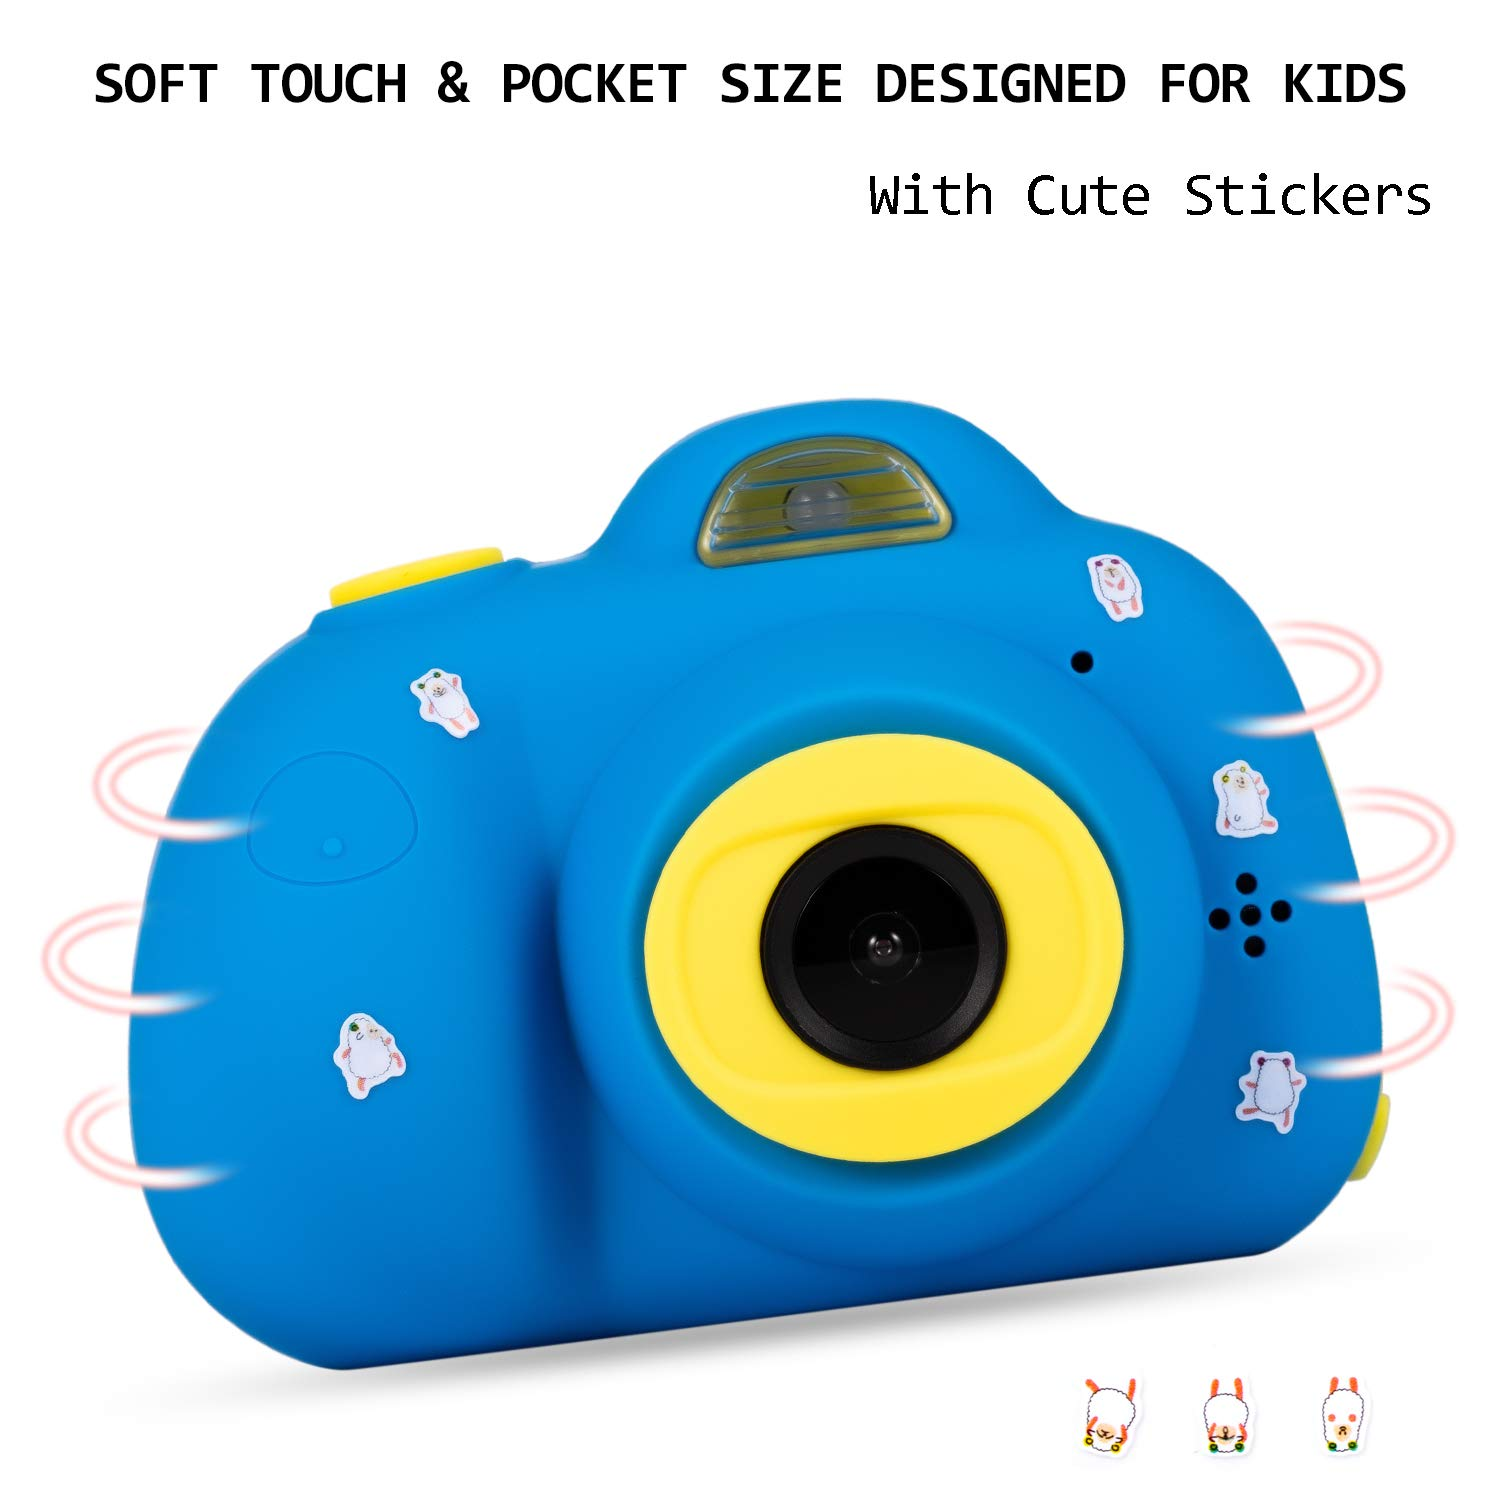 Deeteck Kids Video Camera for Girls Boys, 2 inch Mini Digital Camera,Shockproof Children Camcorders, Toys for 5-9 year old Boys Birthday Gifts with 16GB SD Card(Blue) by Deeteck (Image #6)